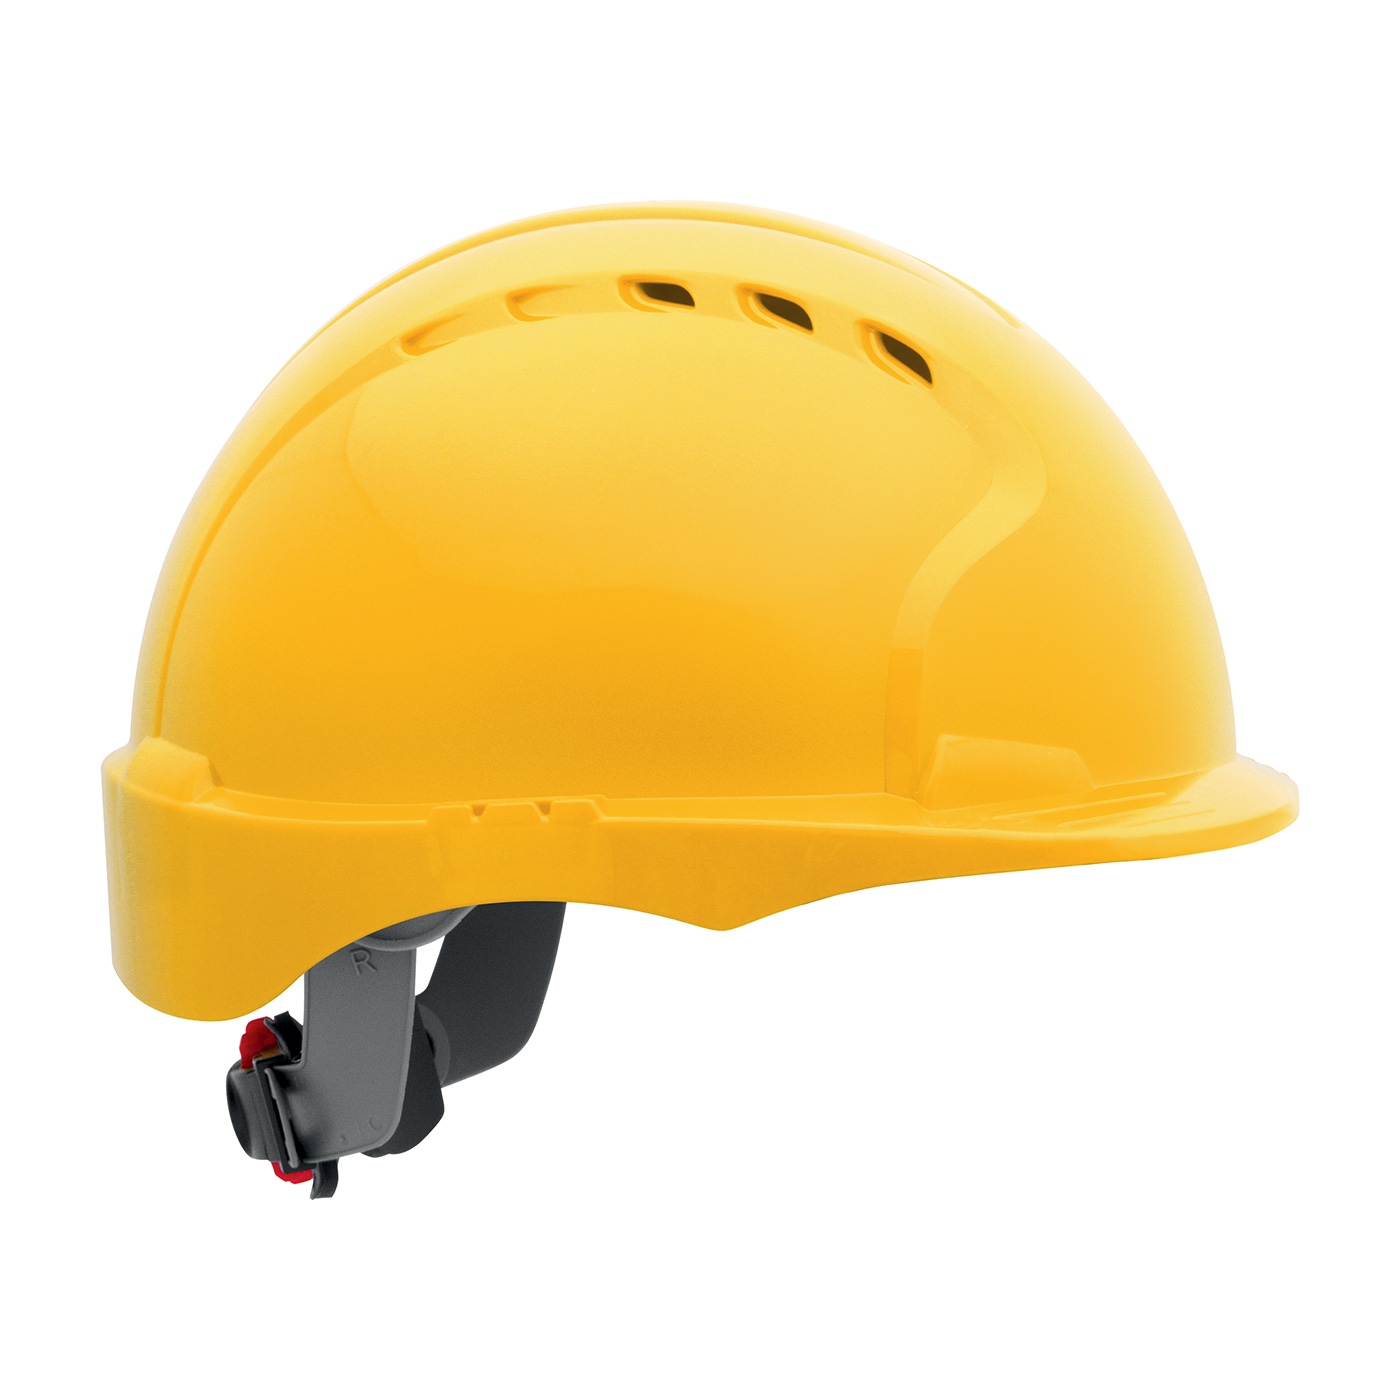 280-EV6151SV PIP® Evolution® Deluxe 6151 Vented, Short Brim Hard Hat with HDPE Shell, 6-Point Polyester Suspension and Wheel Ratchet Adjustment - Yellow